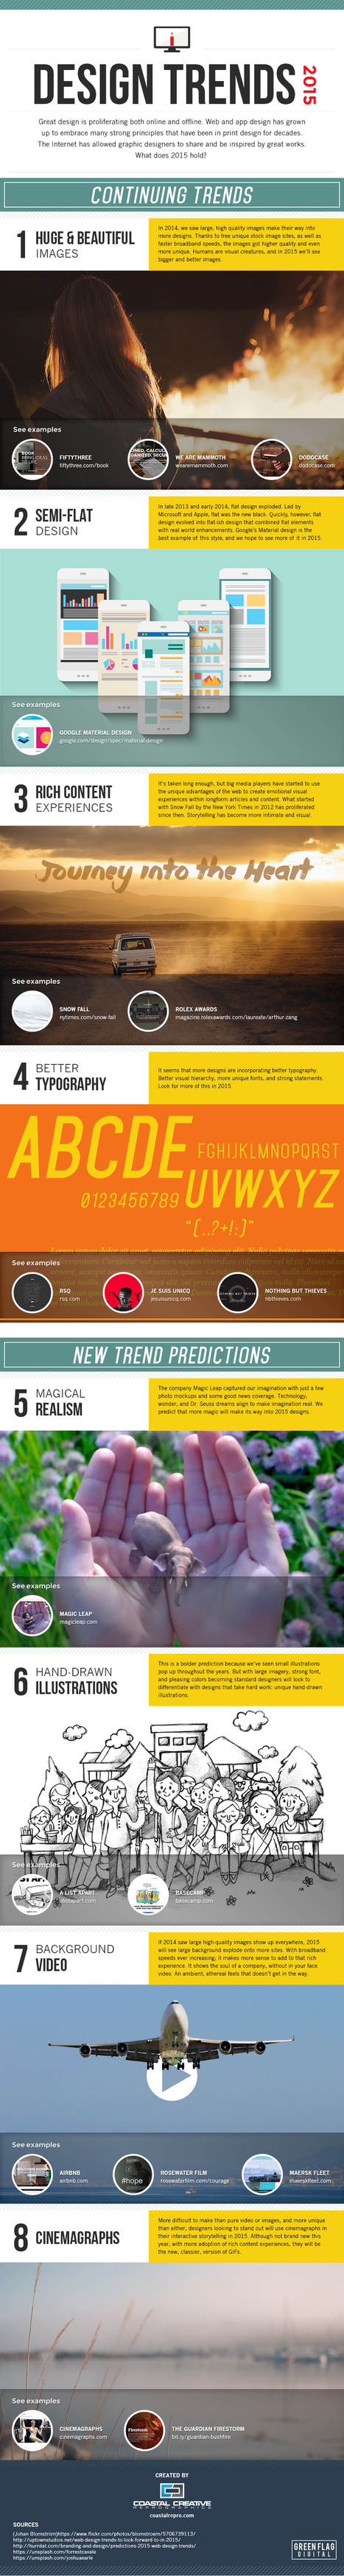 What are the top web design trends today?  (infographic) | Web design- promoting your Website | Scoop.it